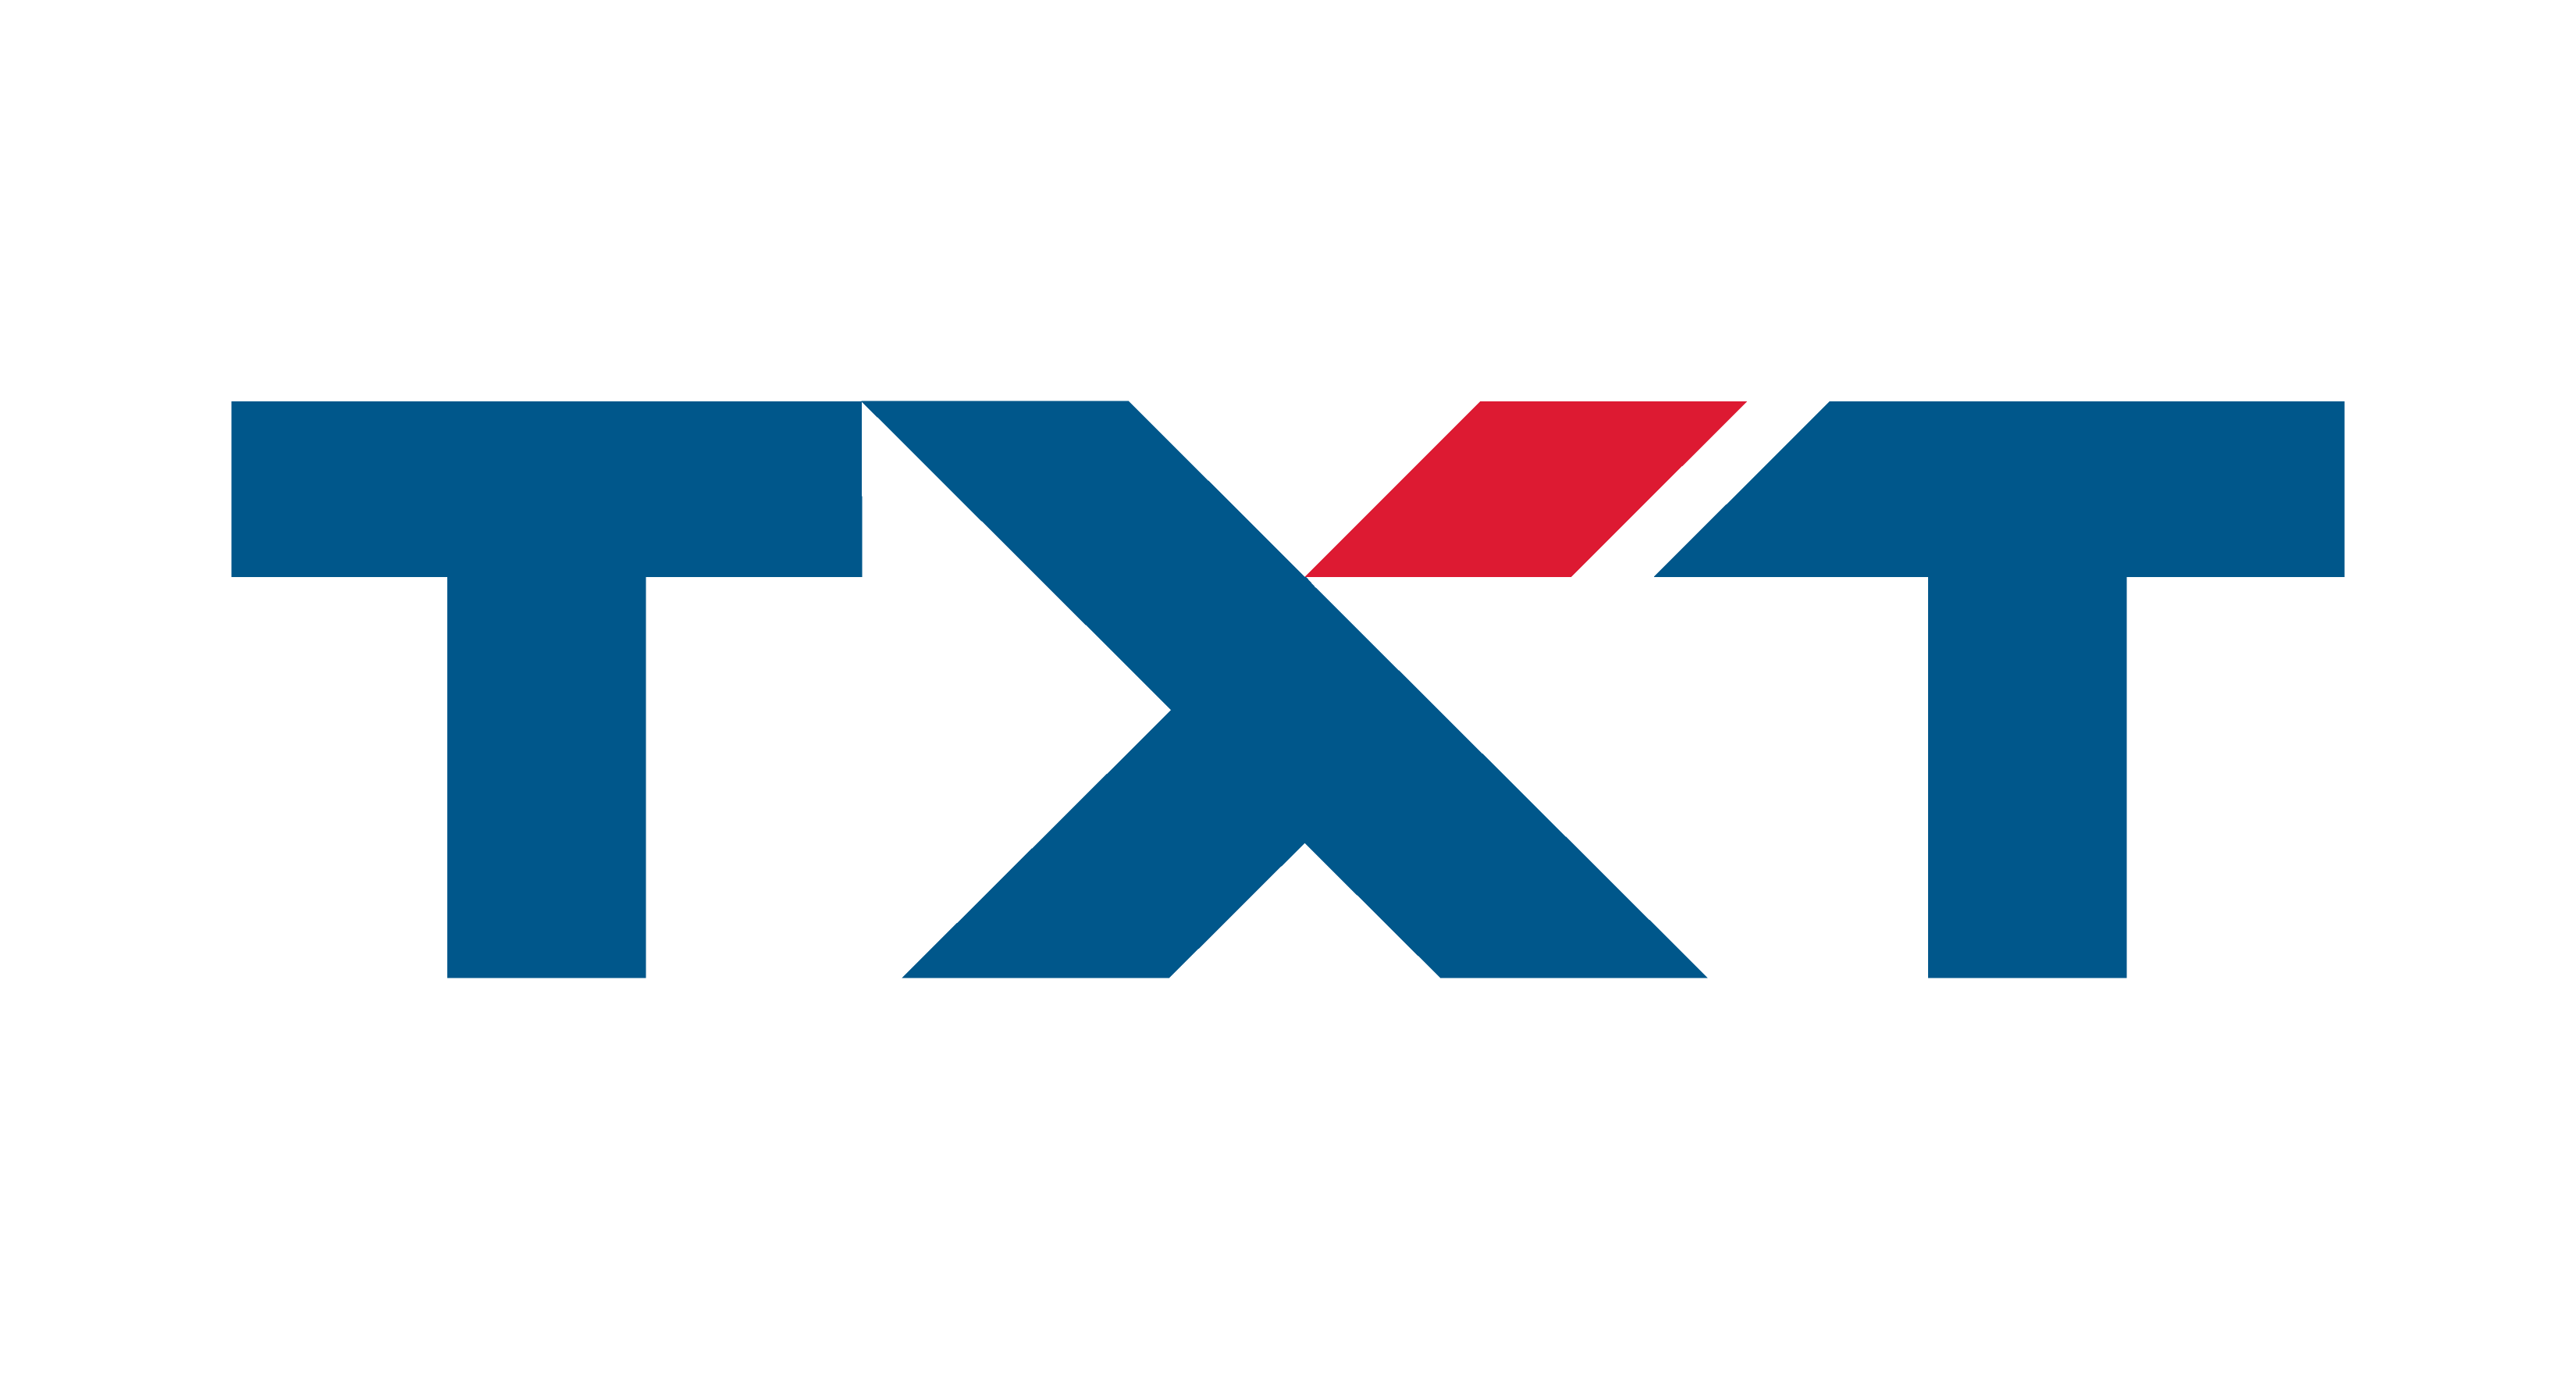 TXT appoints new Senior Vice President, builds up momentum in North American Retail